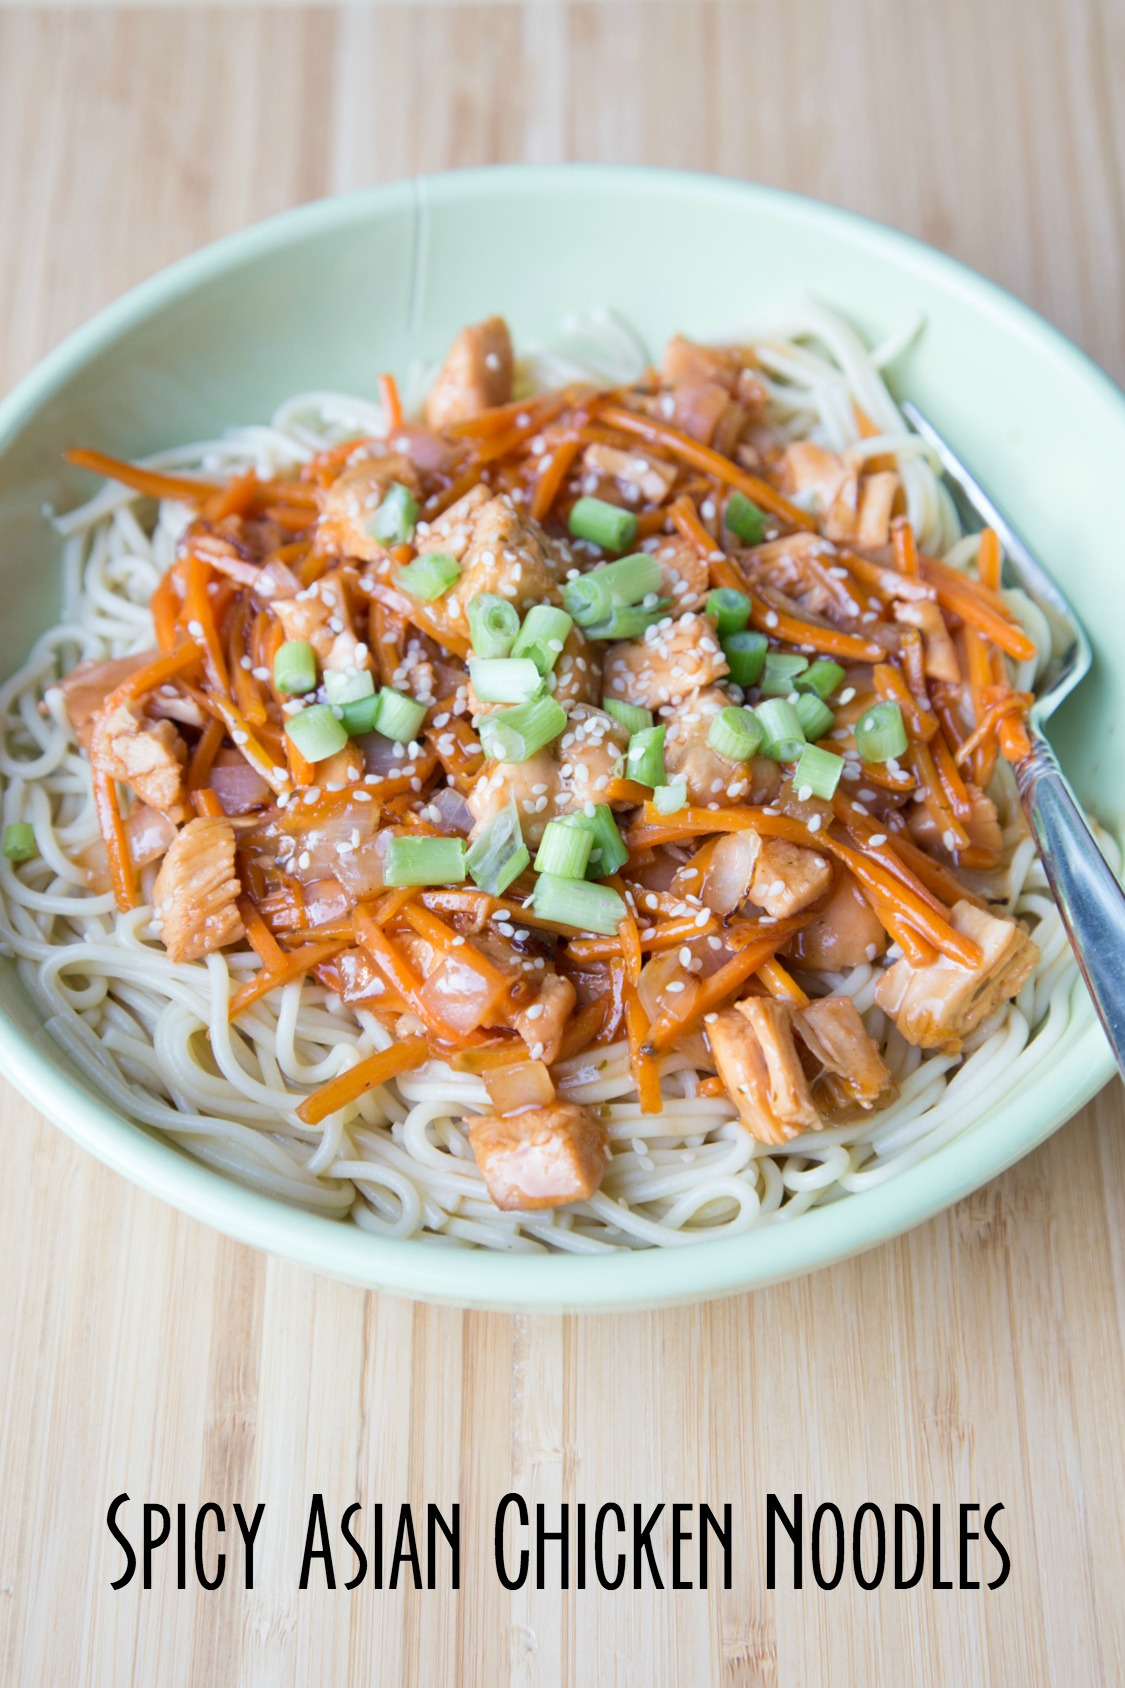 5 Ingredient Spicy Asian Chicken Noodles